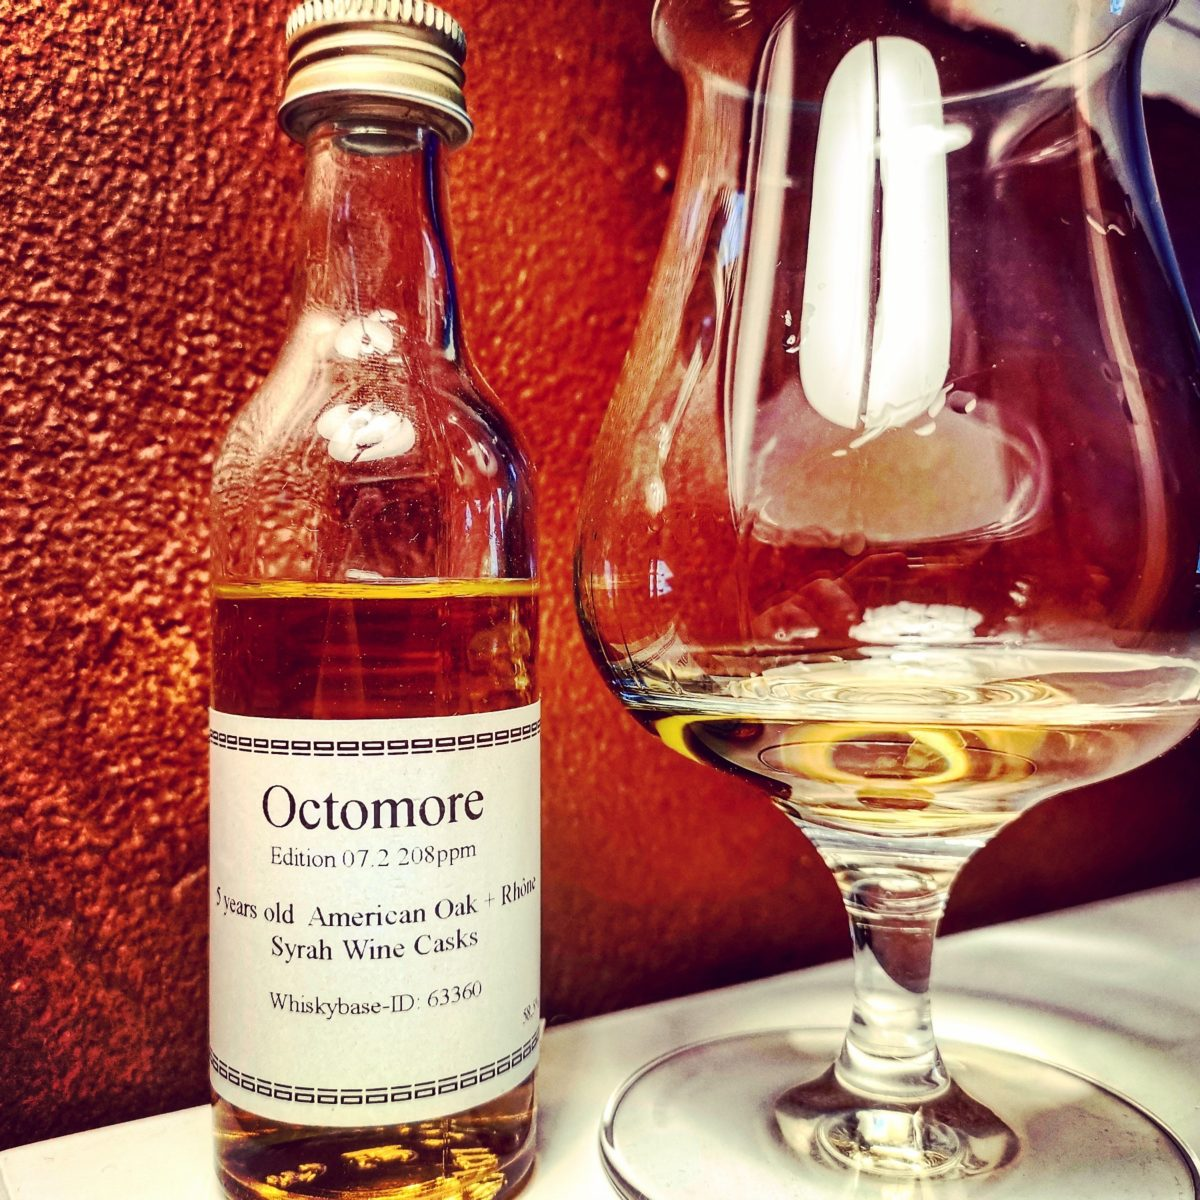 Octomore Edition 07.2 Islay Single Malt Scotch Whisky